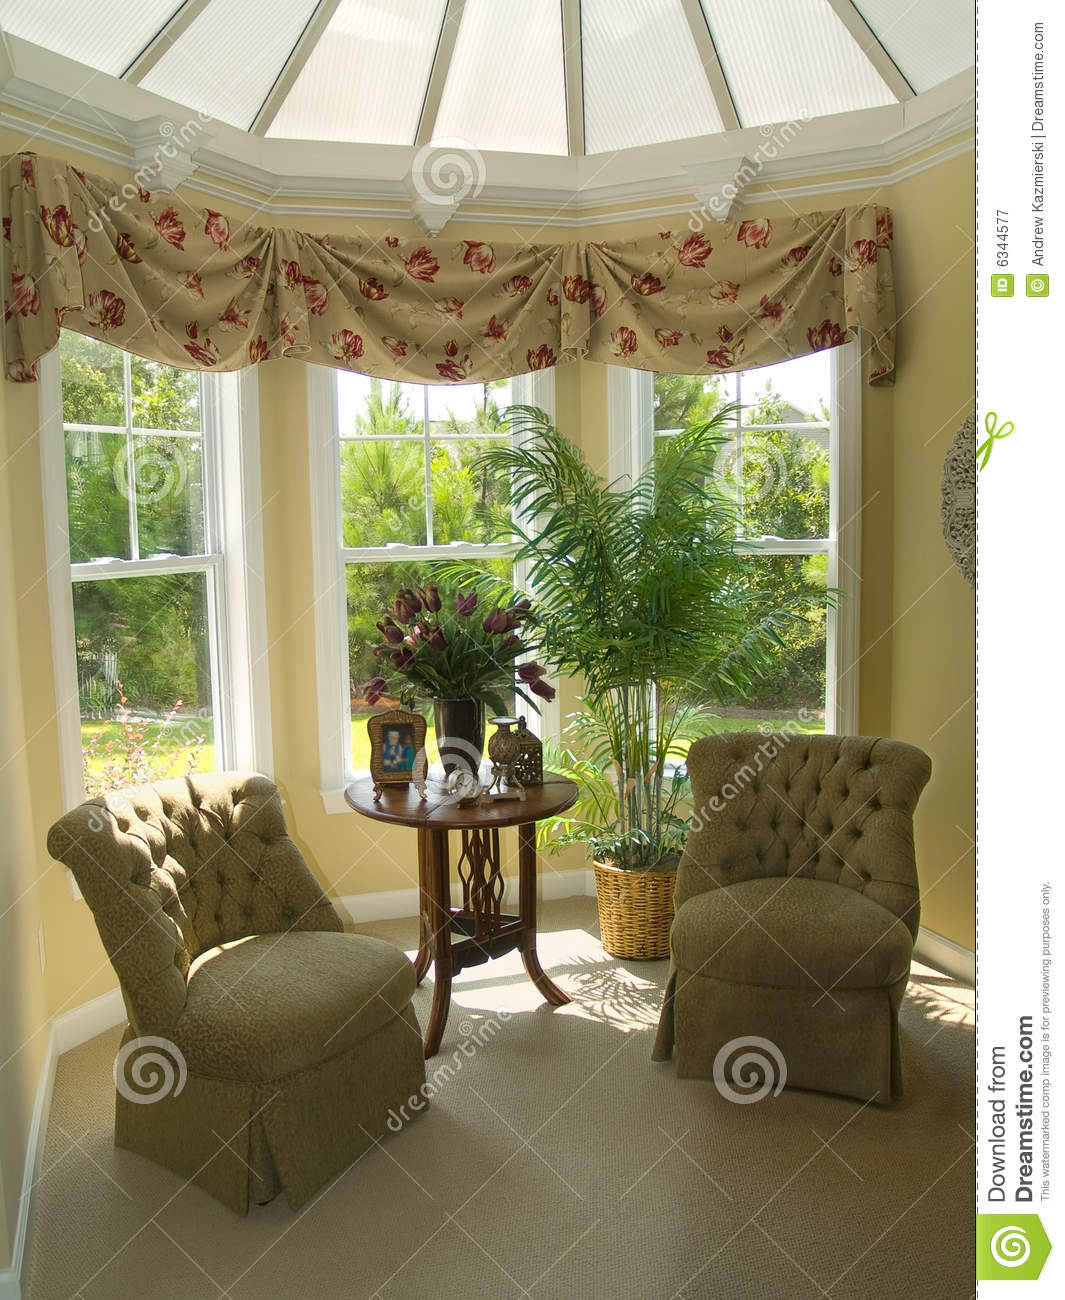 Sitting area royalty free stock photography image 6344577 for Well decorated bedroom